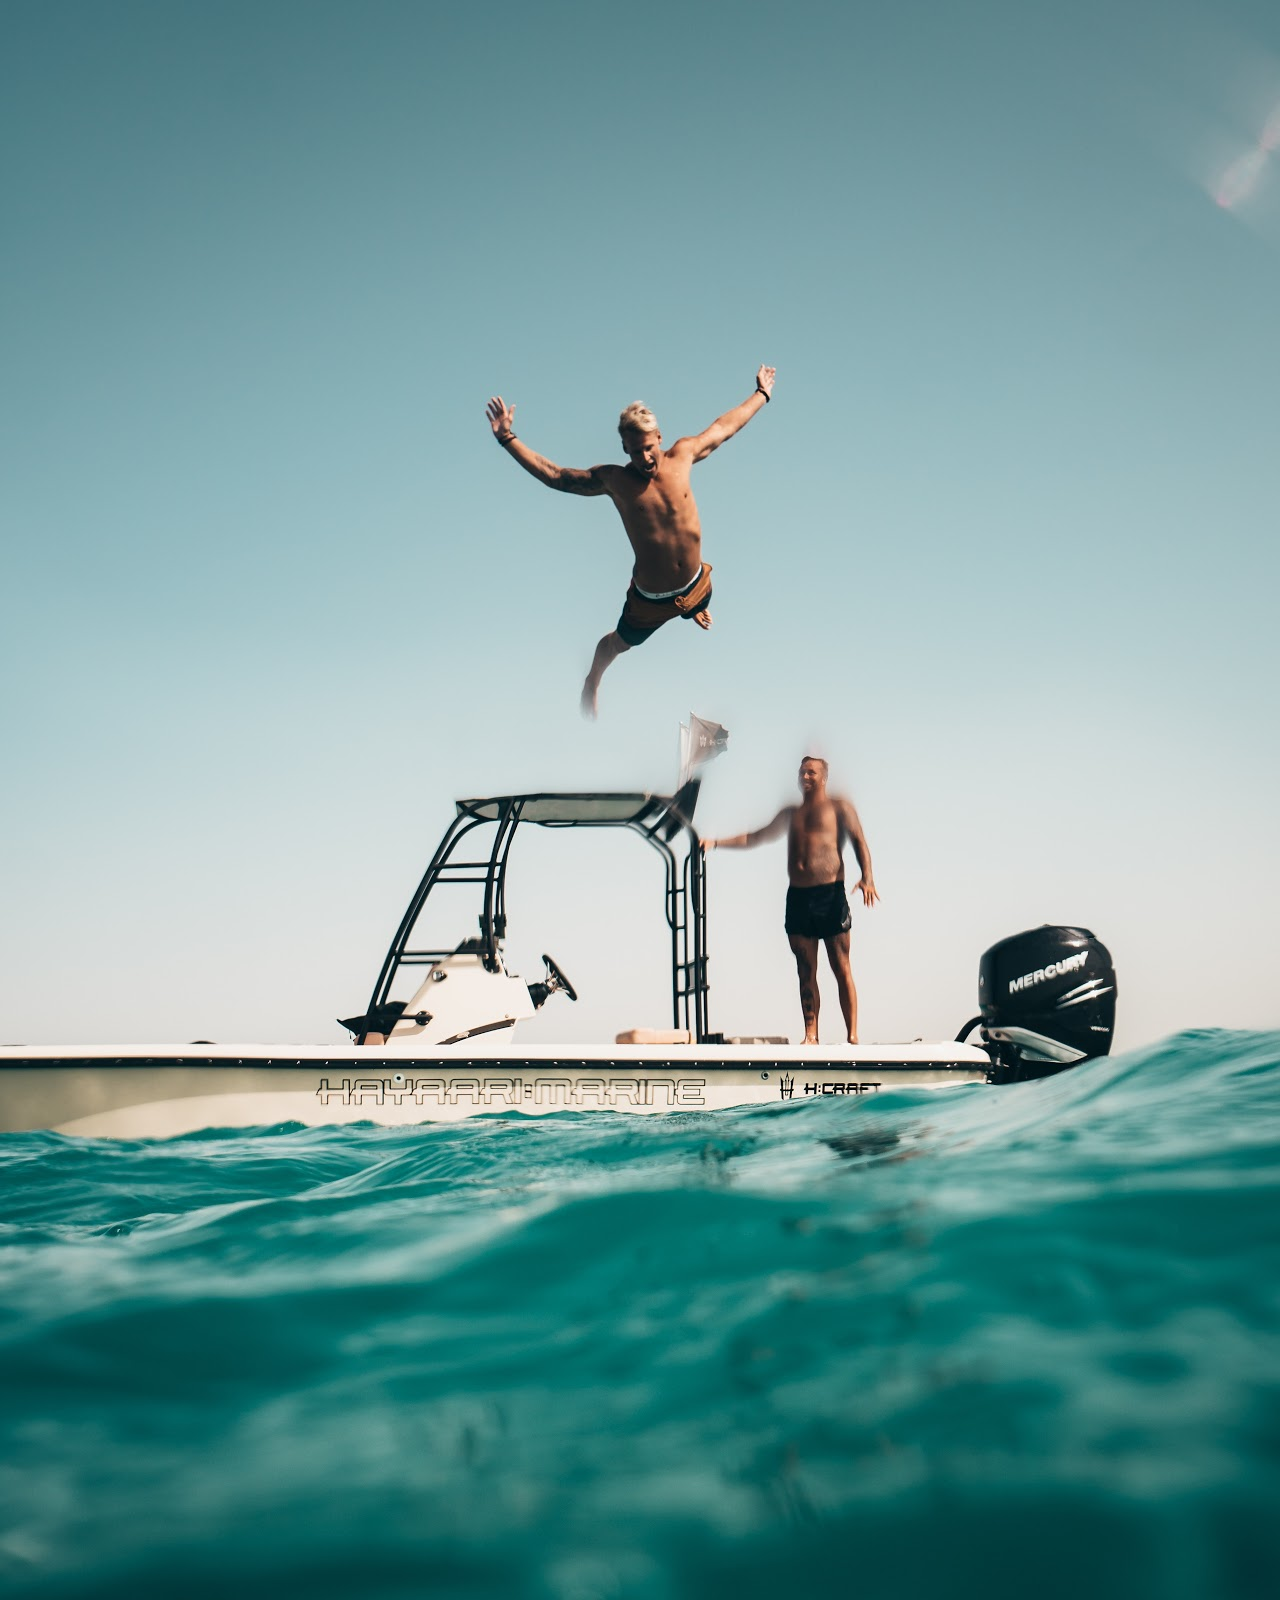 a man jumping off a boat into the water.